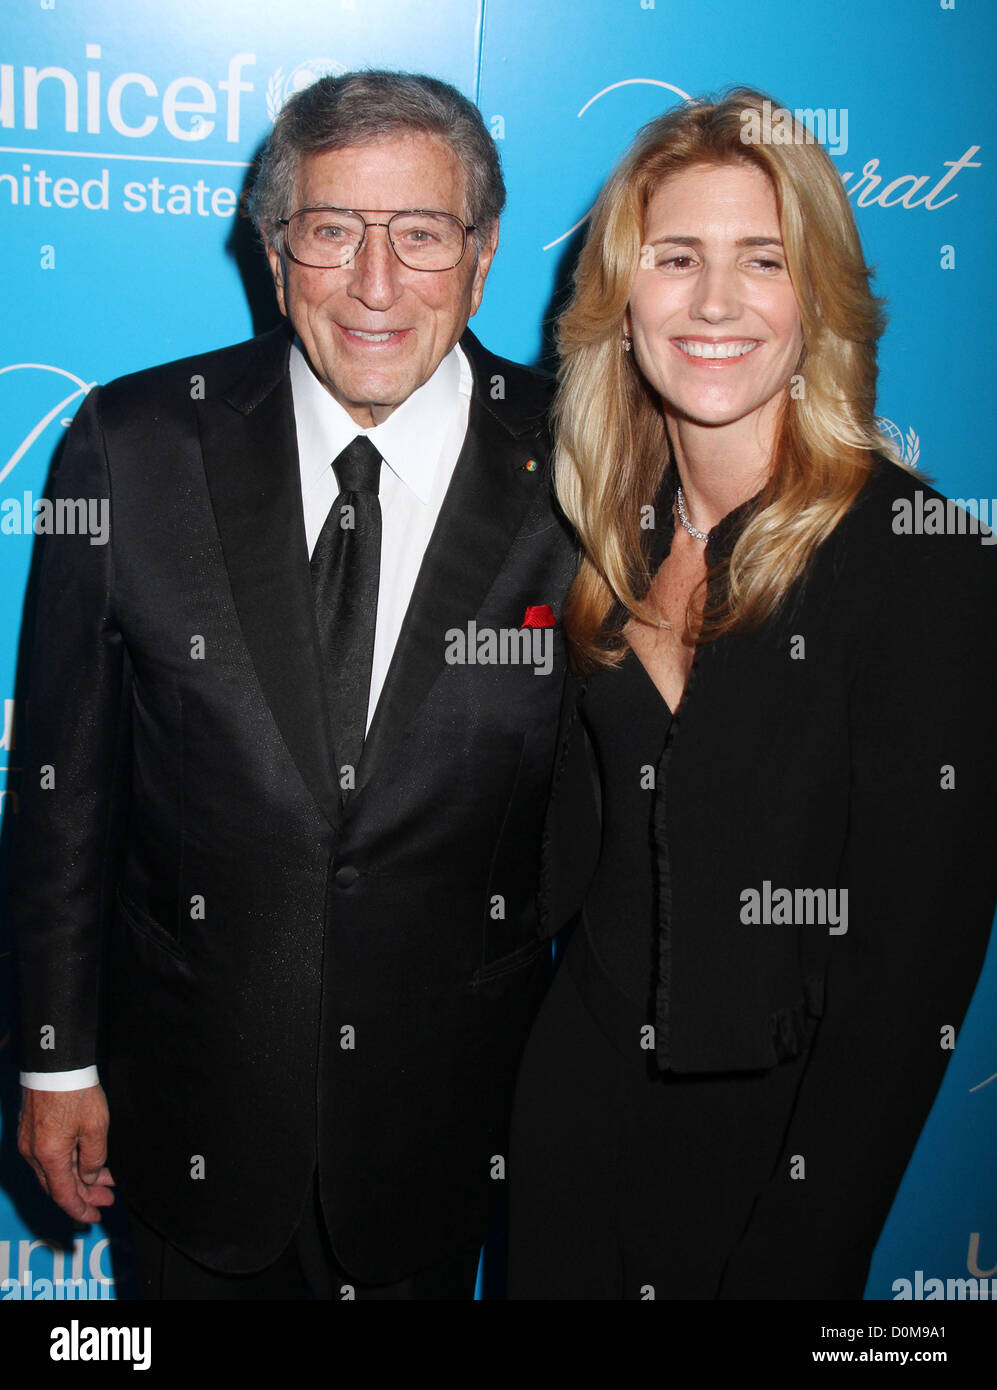 Nov. 27, 2012 - New York, New York, U.S. - Singer TONY BENNETT and his wife SUSAN CROW attend The Eighth Annual - Stock Image